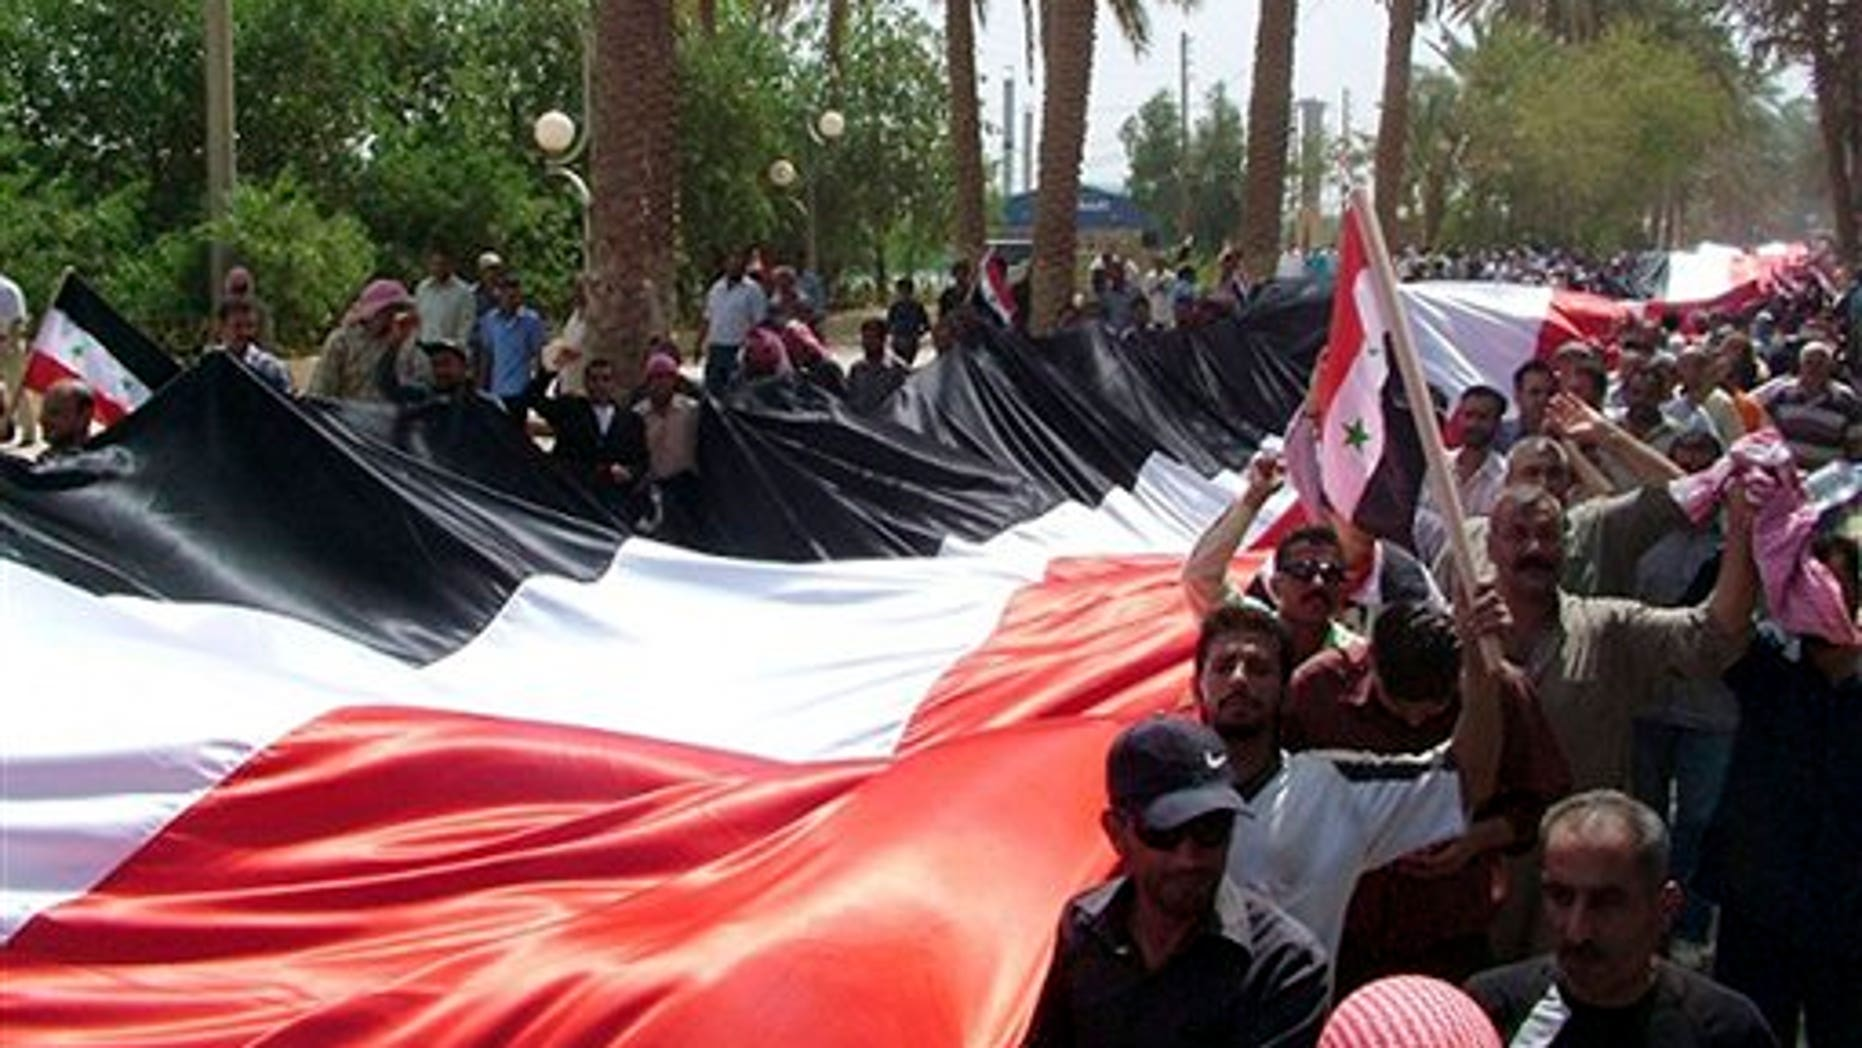 July 28: Syrian pro-government supporters carry a giant national flag during a rally in the eastern province of Deir el-Zour, Syria.